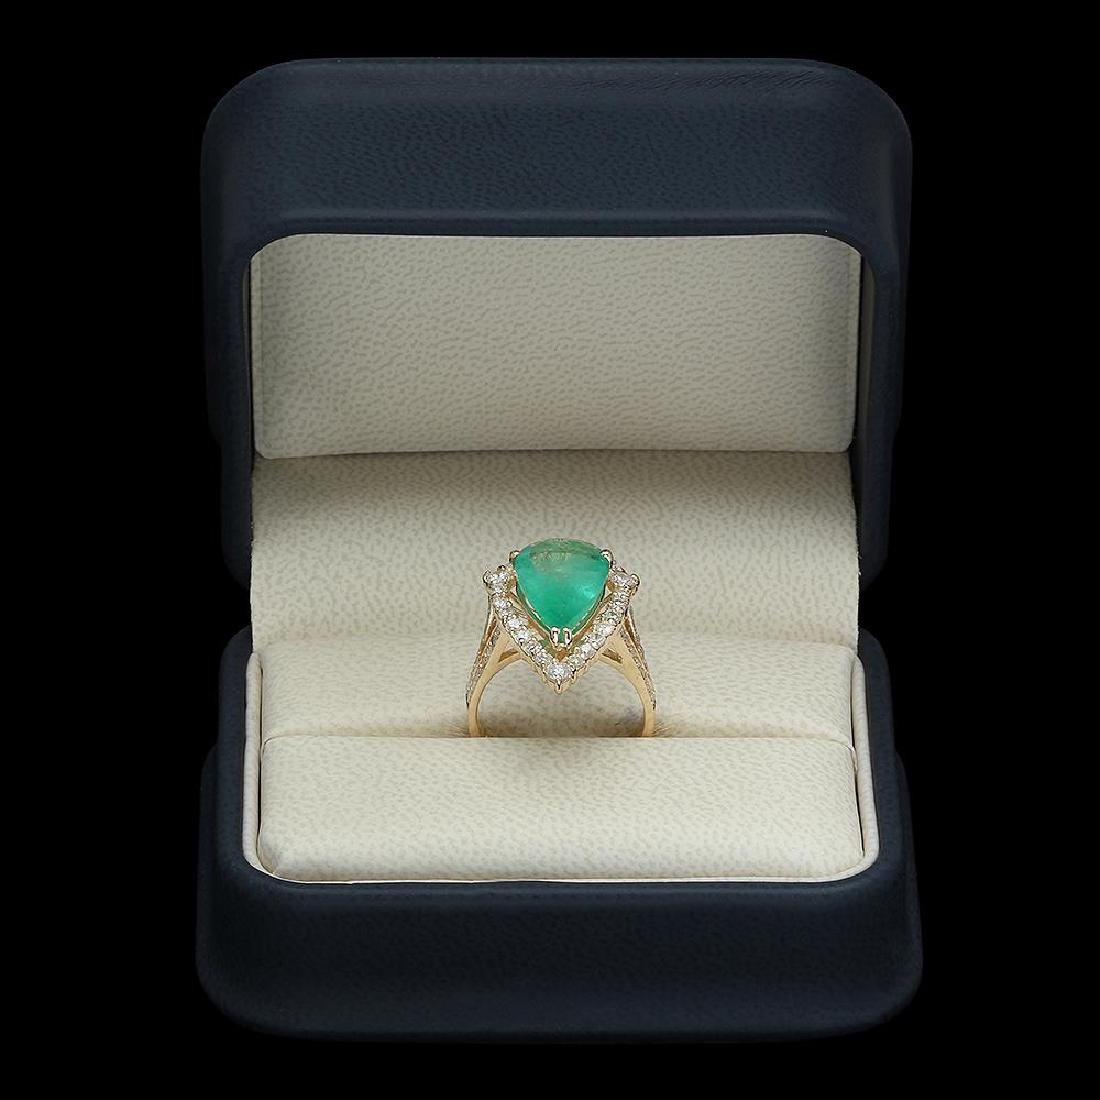 14K Gold 3.82 Emerald 1.05 Diamond Ring - 4